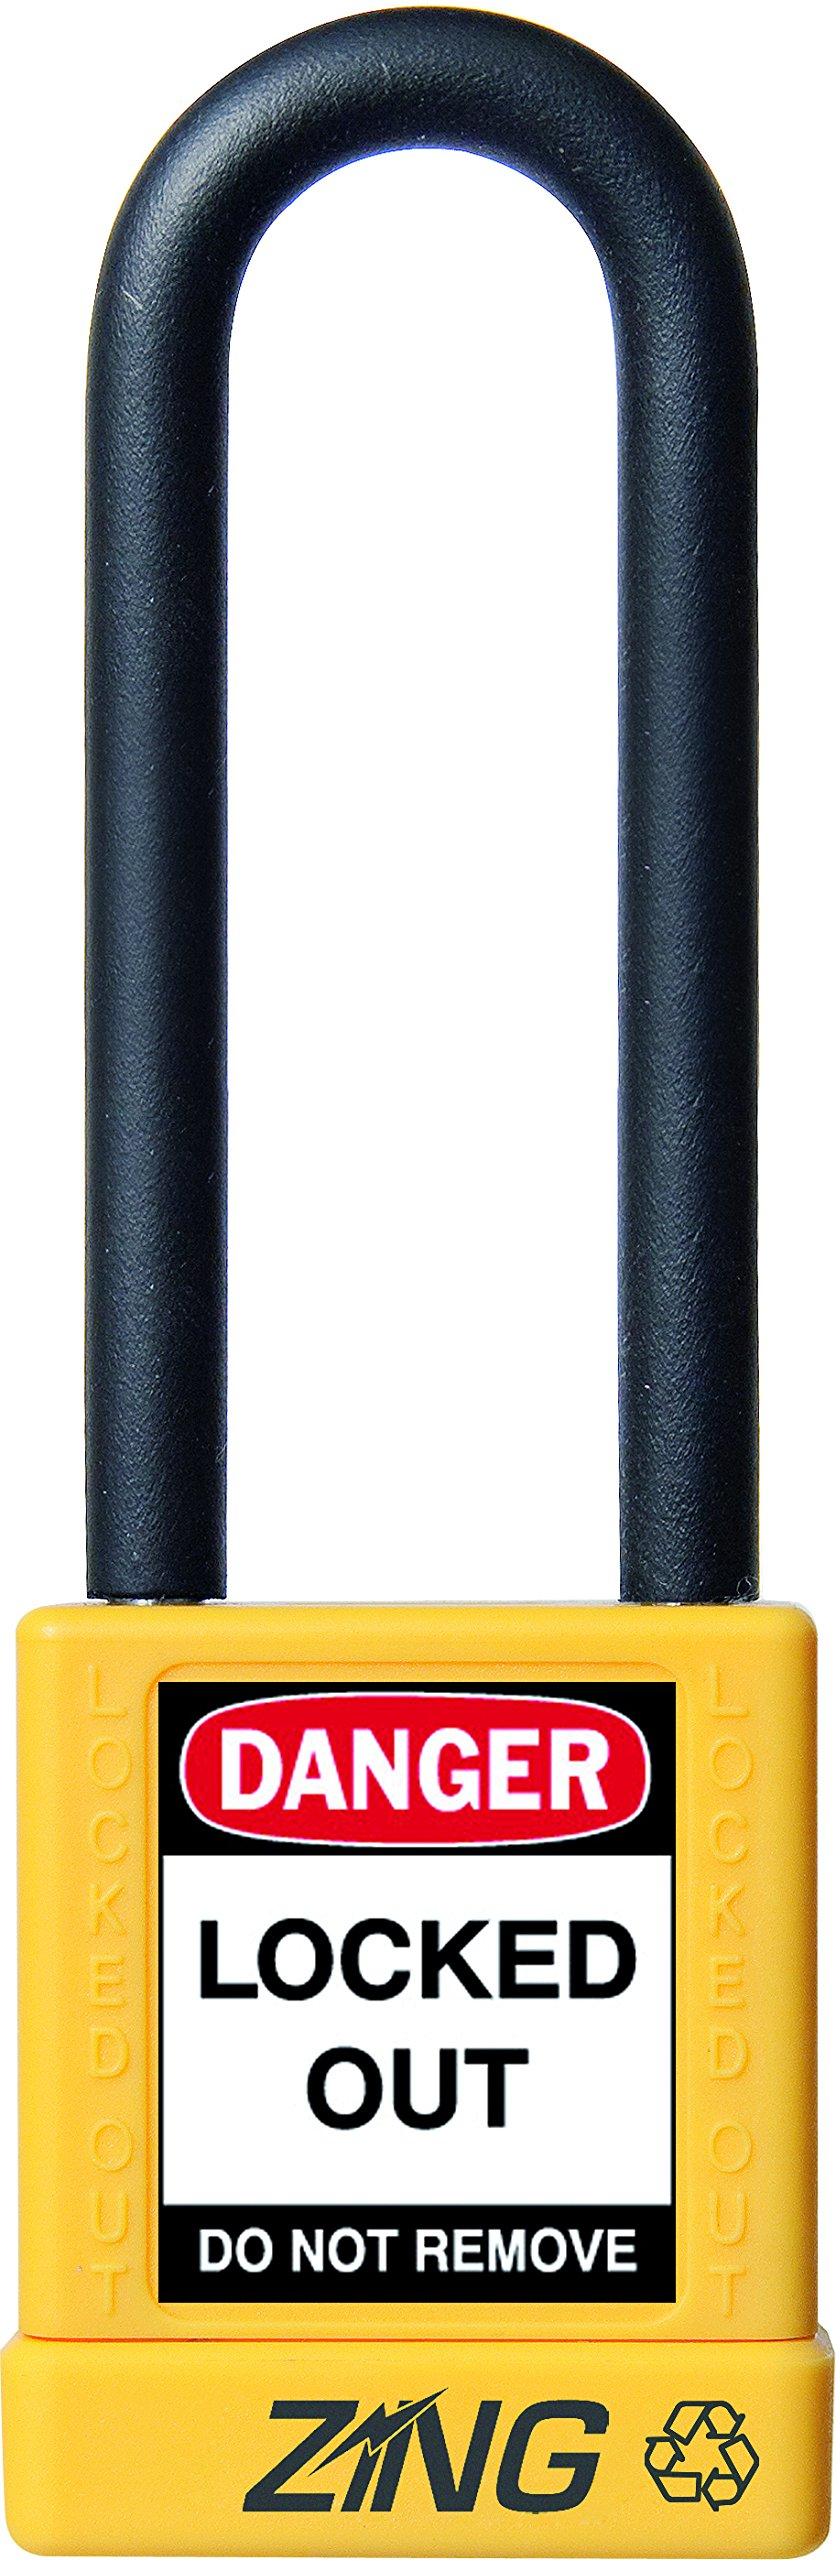 ZING 7054 RecycLock Safety Padlock, Keyed Different, 3'' Shackle, 1-3/4'' Body, Yellow